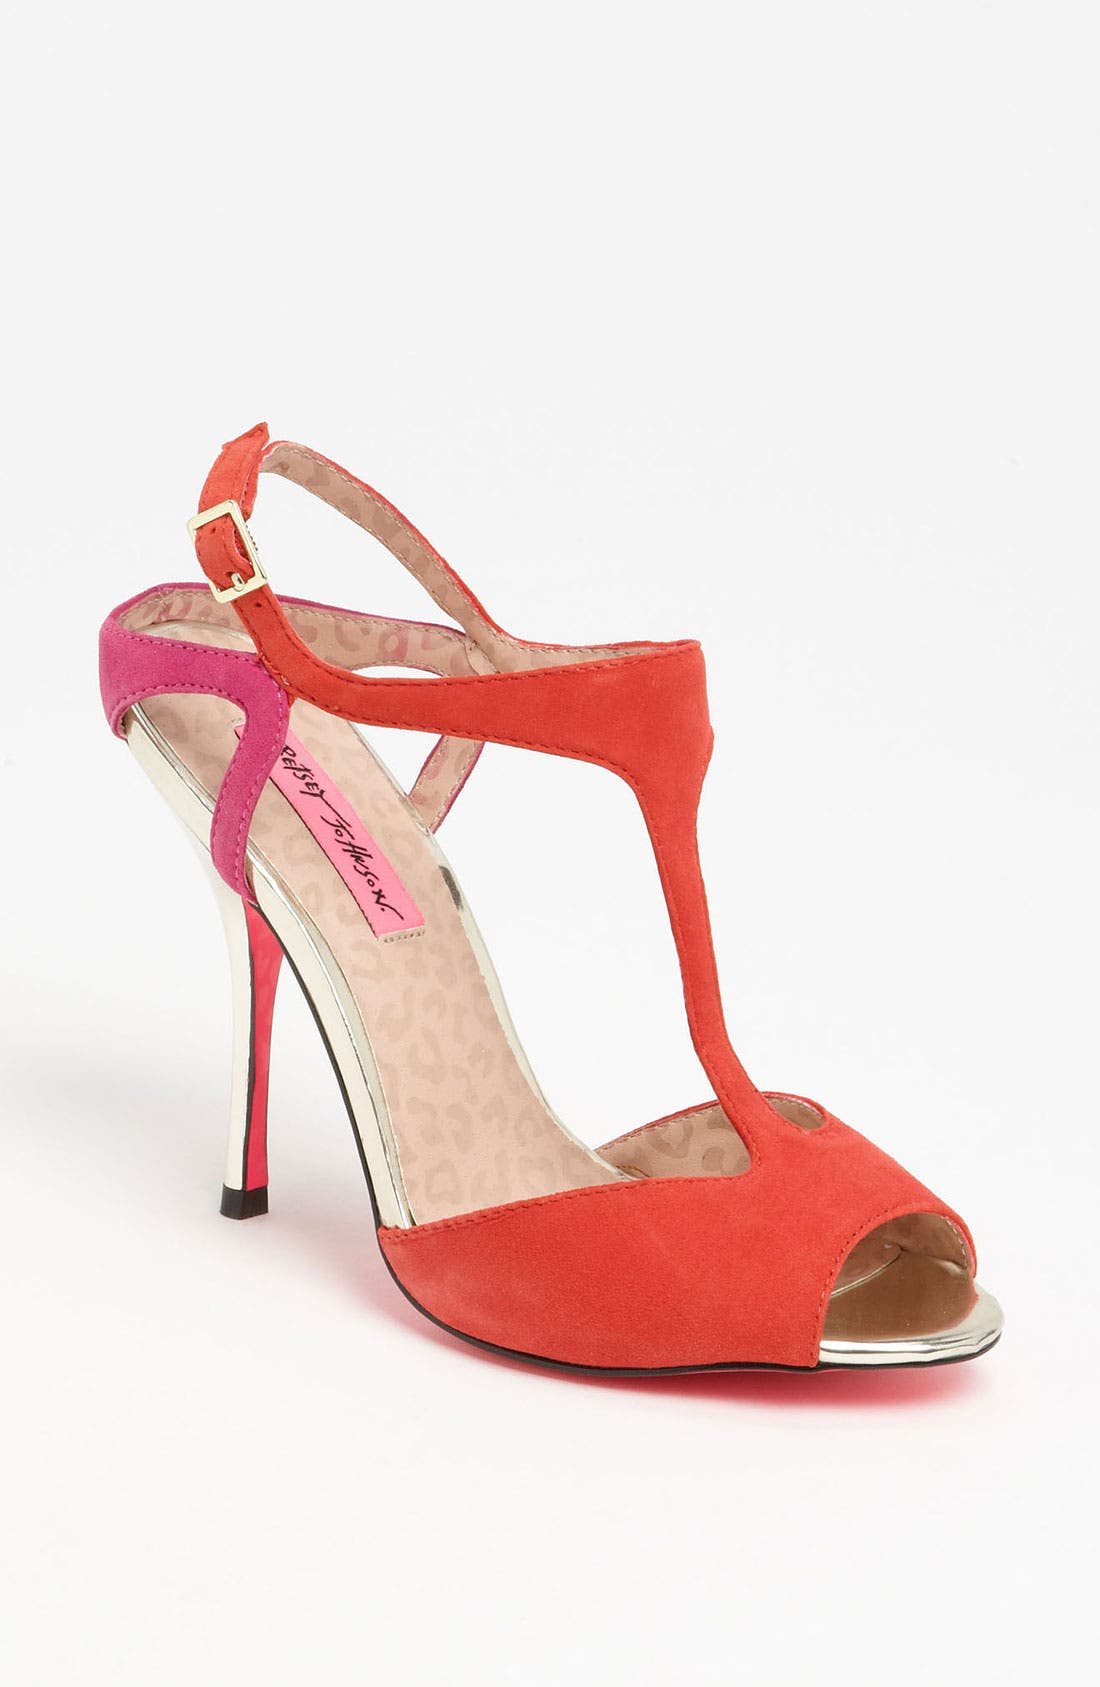 Main Image - Betsey Johnson 'Blonddee' Sandal